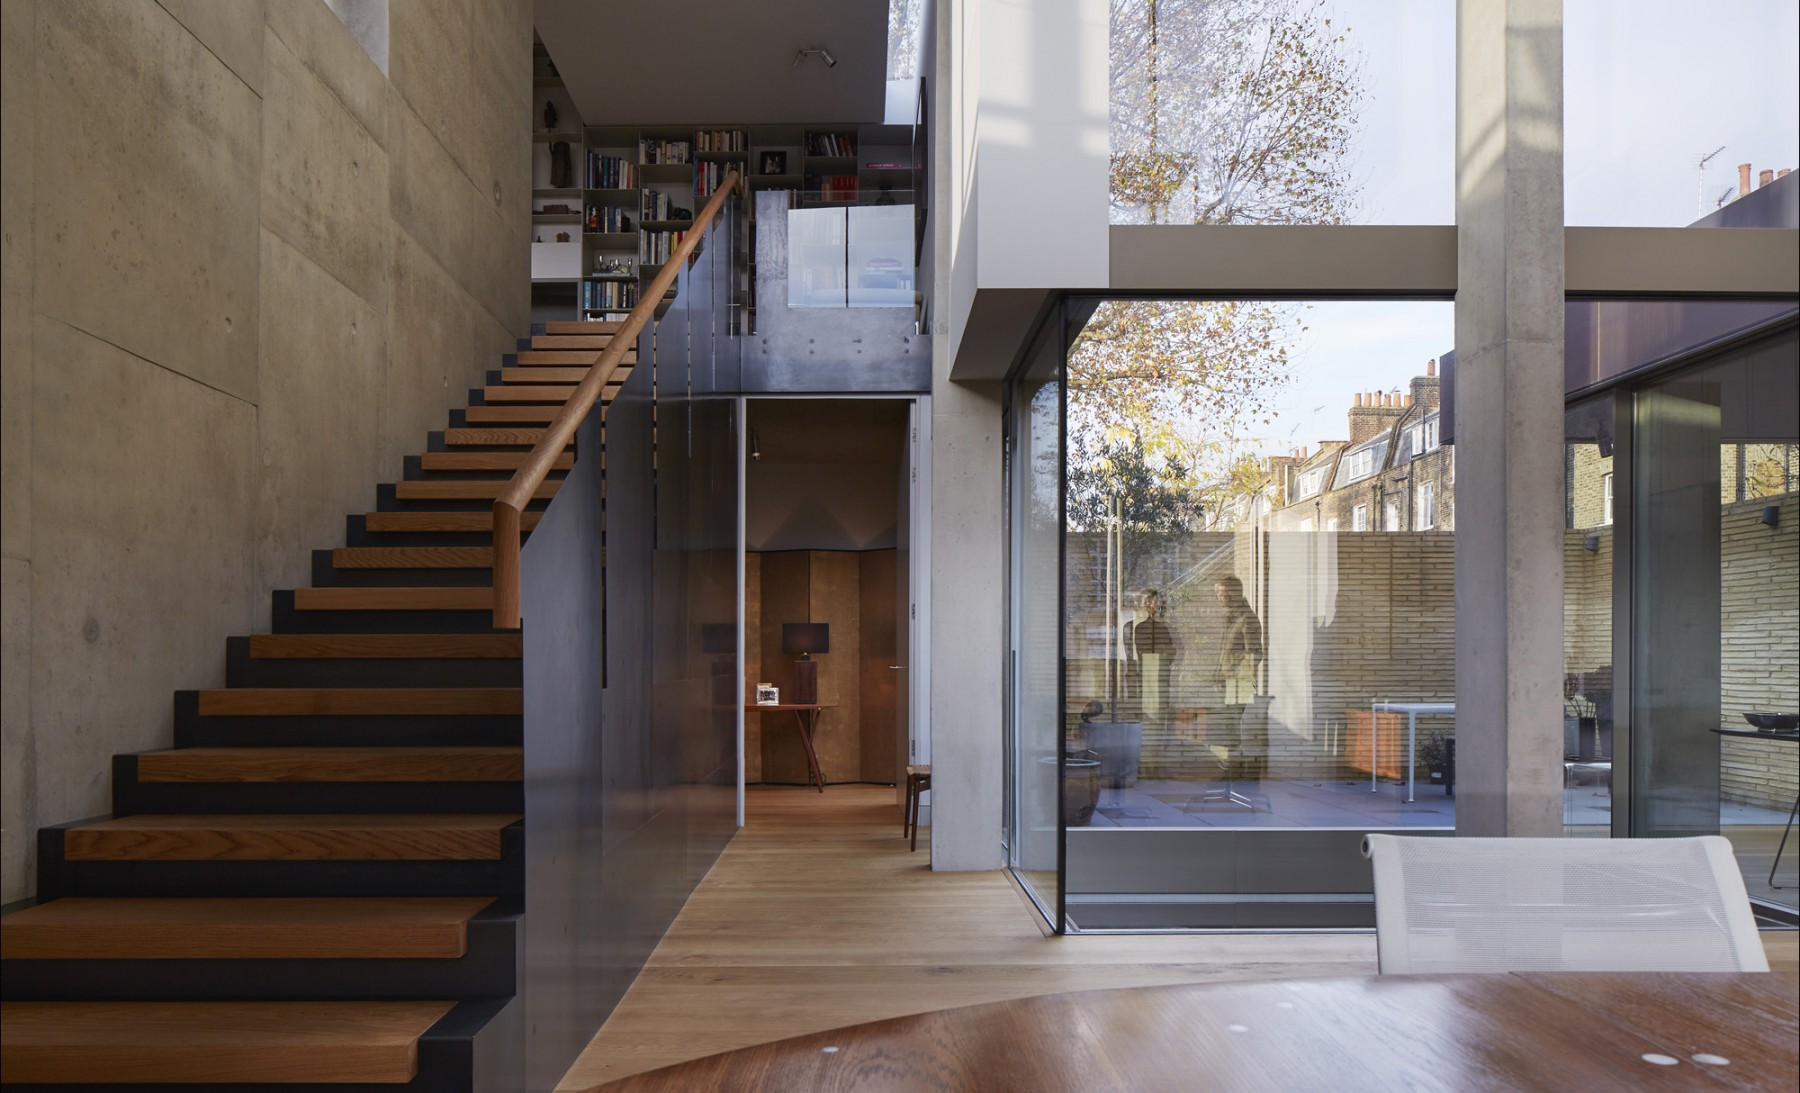 Levring-House-Jamie-Fobert-Architects-RIBA-National-Award-Manser-Medal-residential-London-house-Doughty-Mews-interior